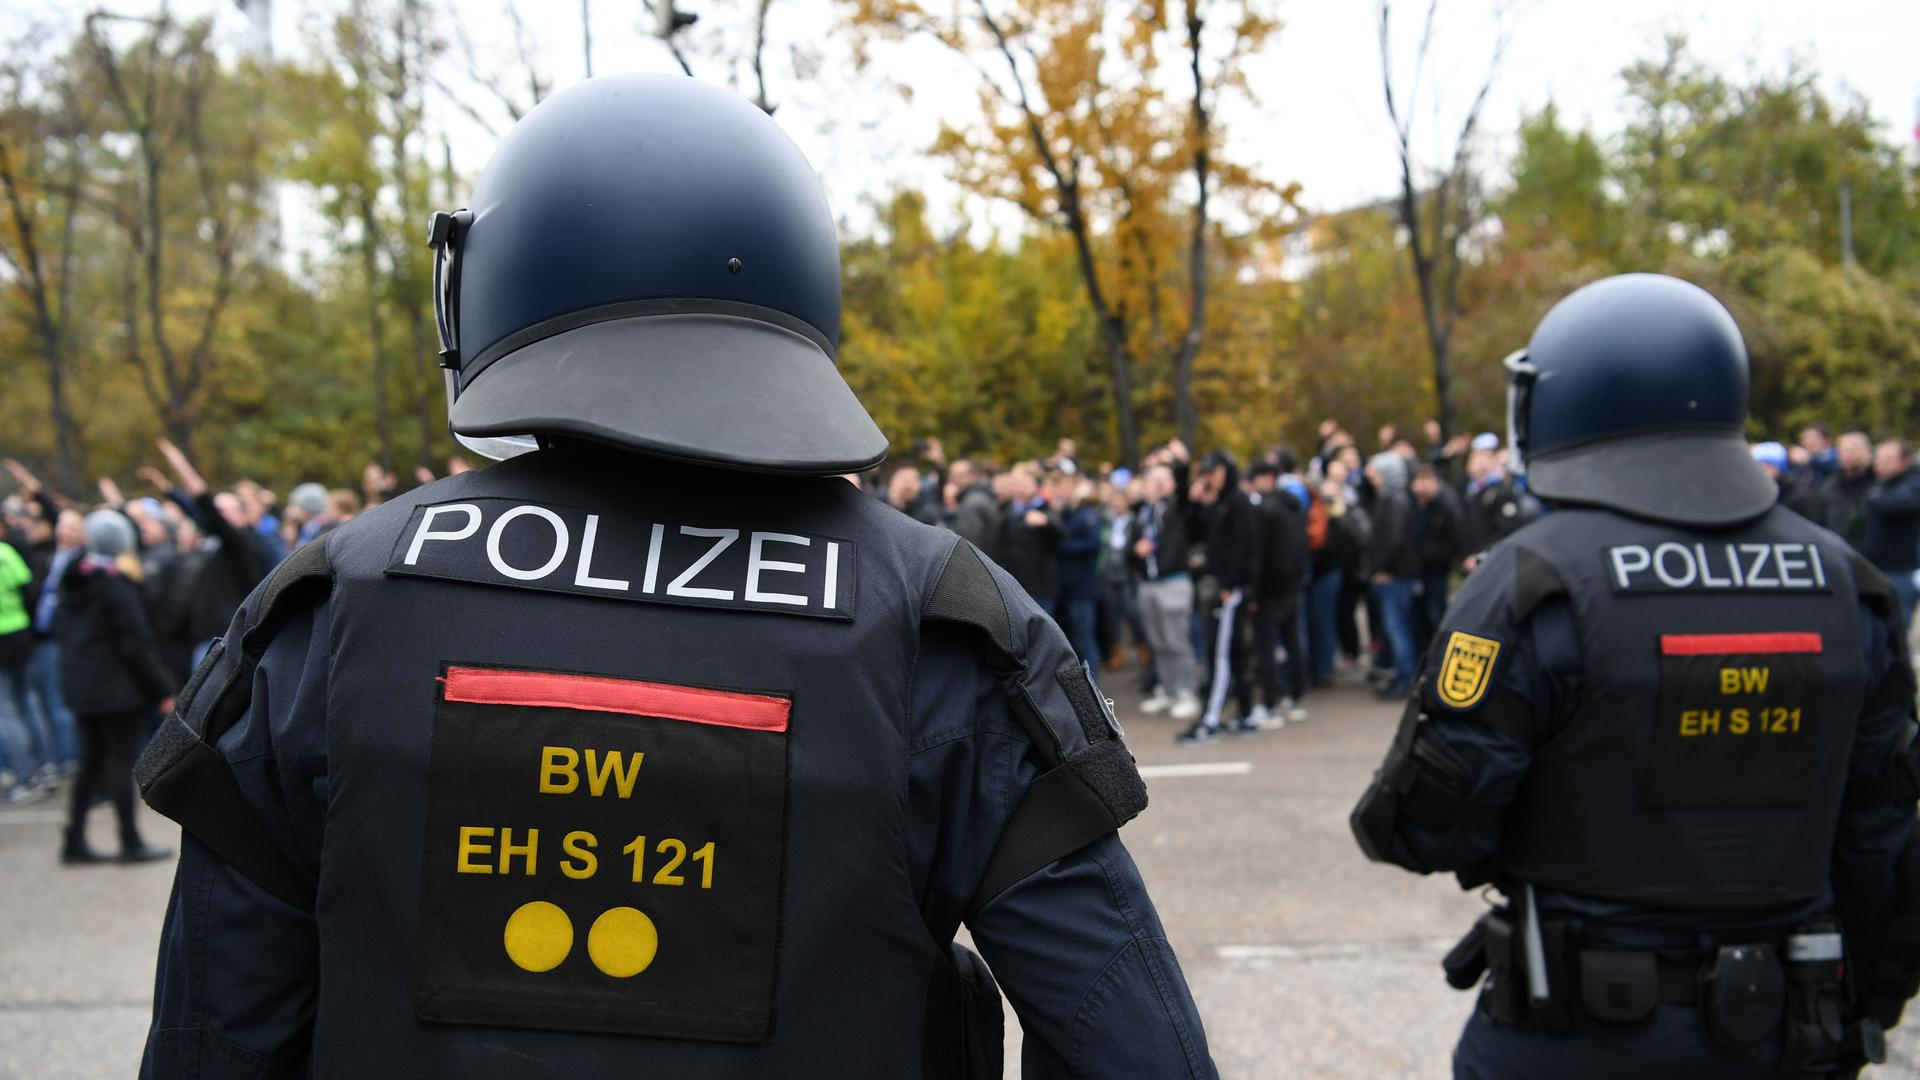 Fanmarsch des KSC begleitet von der Polizei.  GES/ Fussball/ 2. Bundesliga: VfB Stuttgart - Karlsruher SC, 24.11.2019  Football / Soccer: 2nd League: VfB Stuttgart vs Karlsruher SC, Stuttgart, November 24, 2019